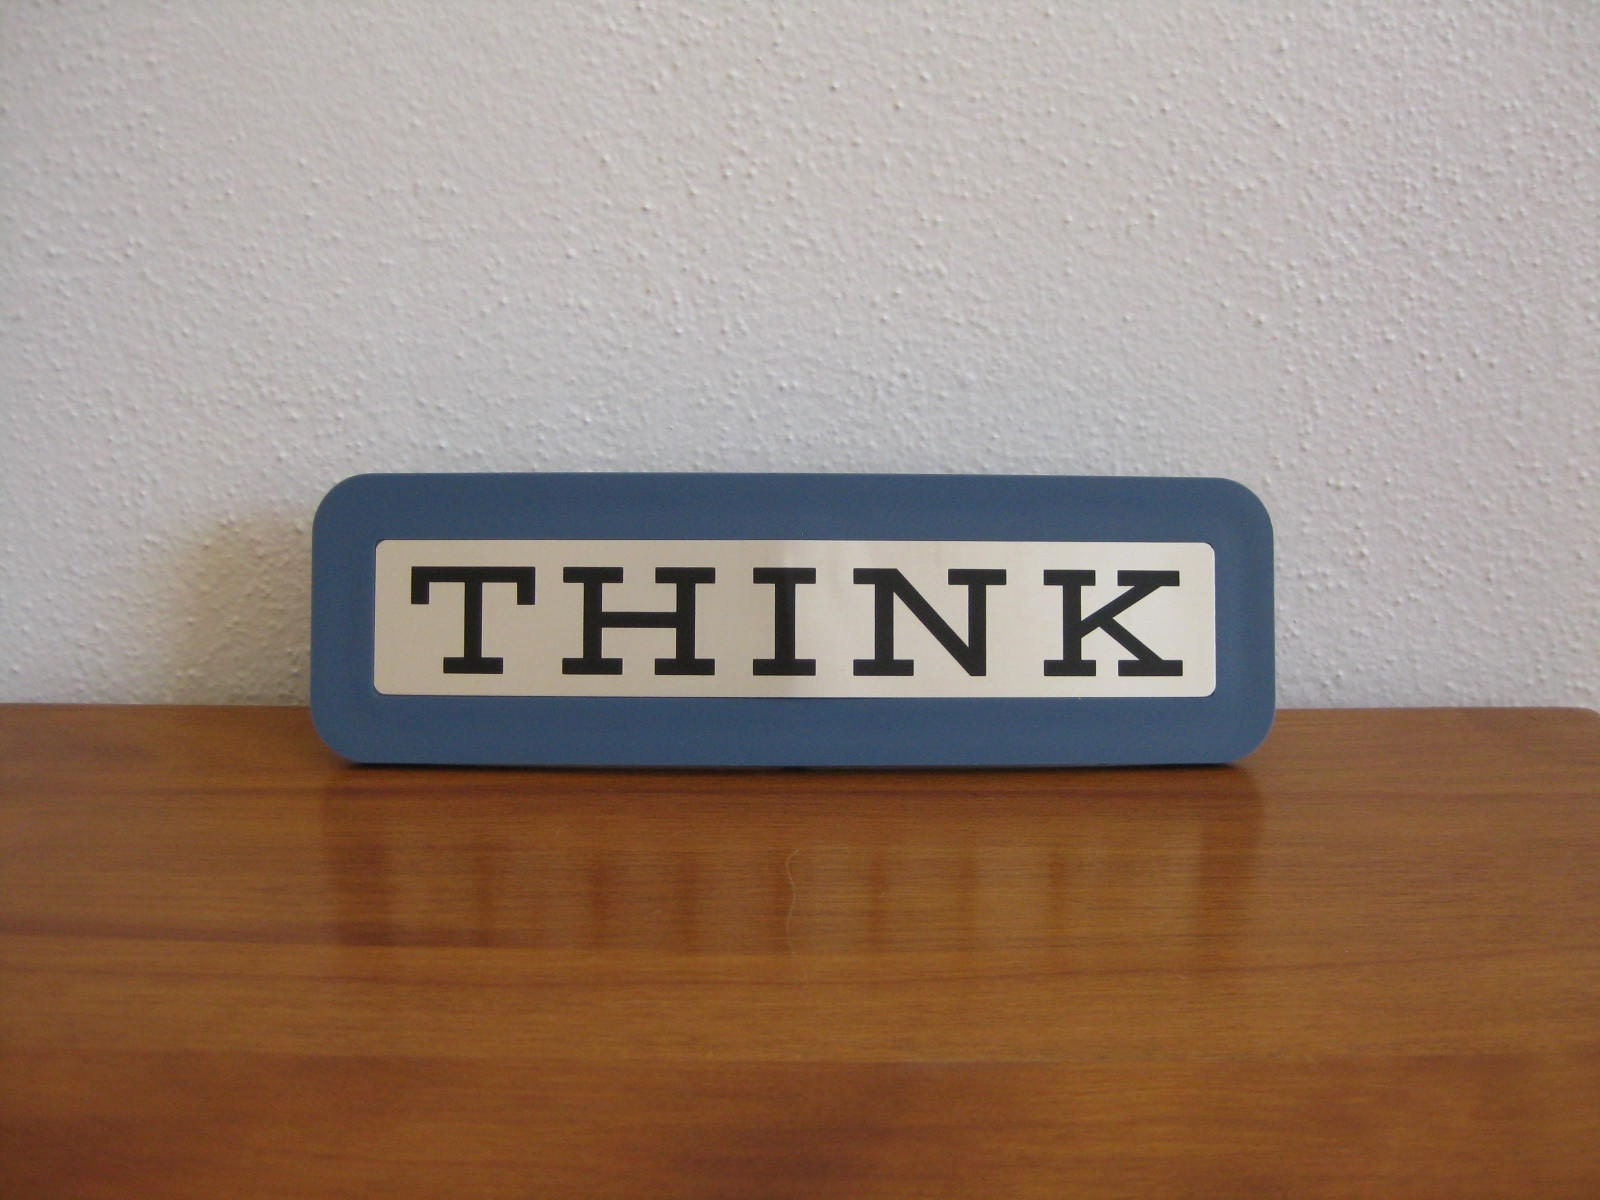 Think Desktop Plaque Made By Ibm In The 1960 S